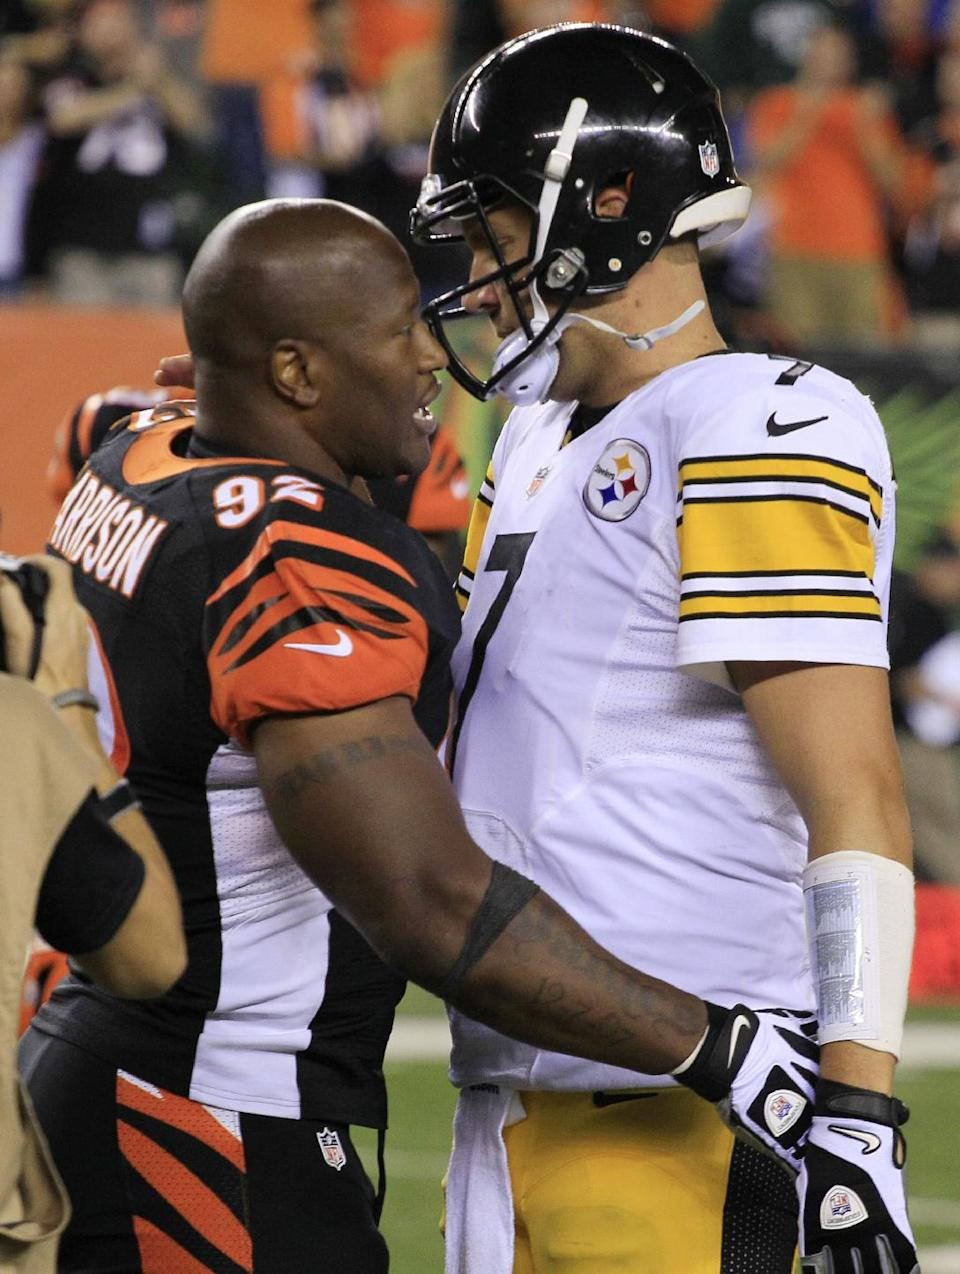 Cincinnati Bengals outside linebacker James Harrison (92) hugs Pittsburgh Steelers quarterback Ben Roethlisberger (7) after the Bengals defeated the Steelers 20-10 in an NFL football game, Monday, Sept. 16, 2013, in Cincinnati. (AP Photo/Tom Uhlman)